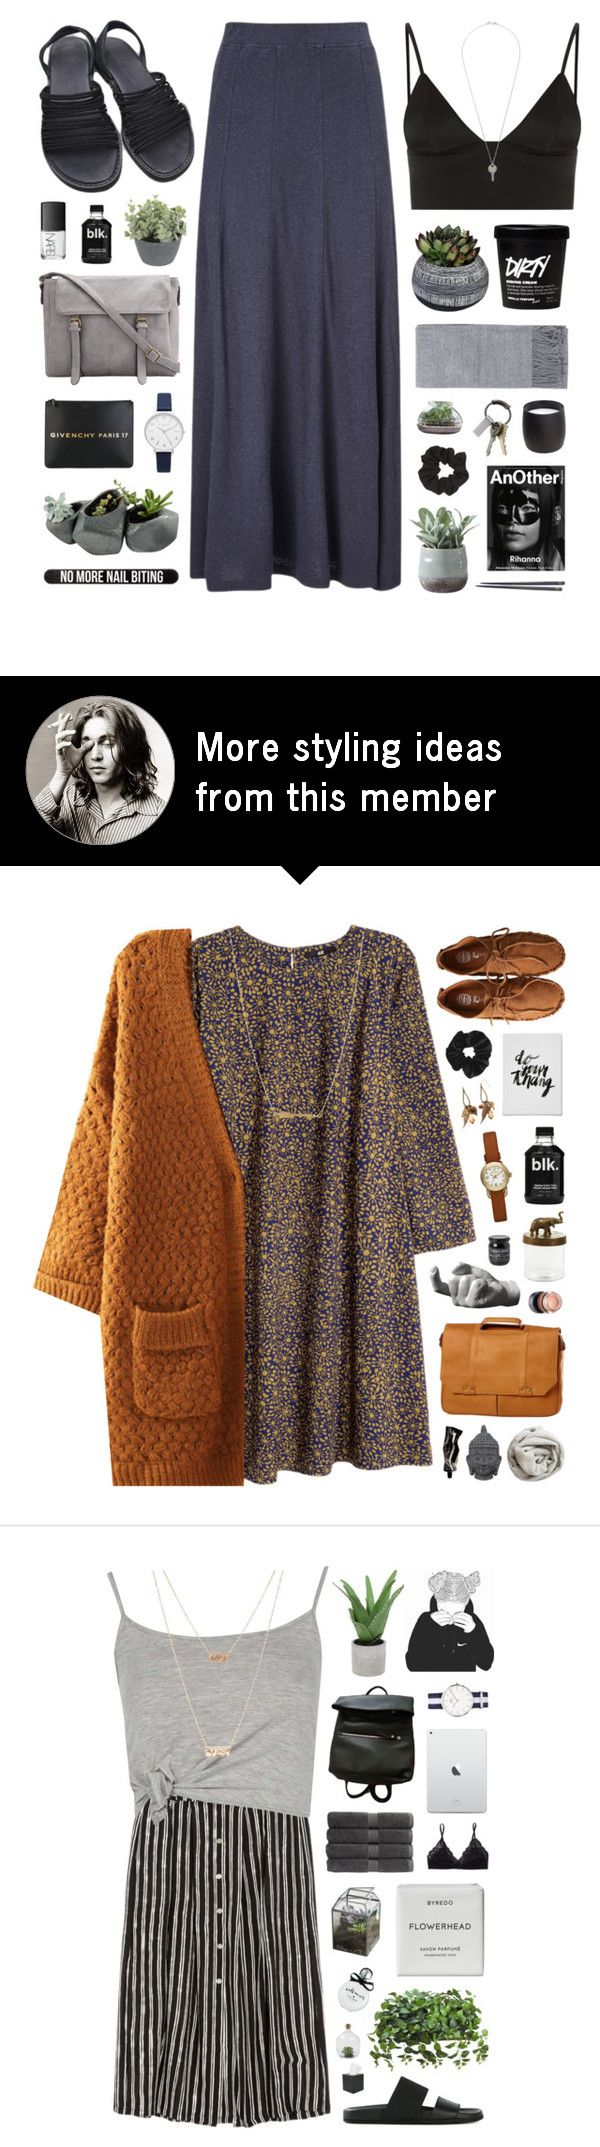 """seventeen"" by karm-a on Polyvore featuring мода, EAST, T By Alexander Wang, Half Light Honey, Torre & Tagus, Dot & Bo, Evergreen, Topshop, H&M и Olivia Burton"